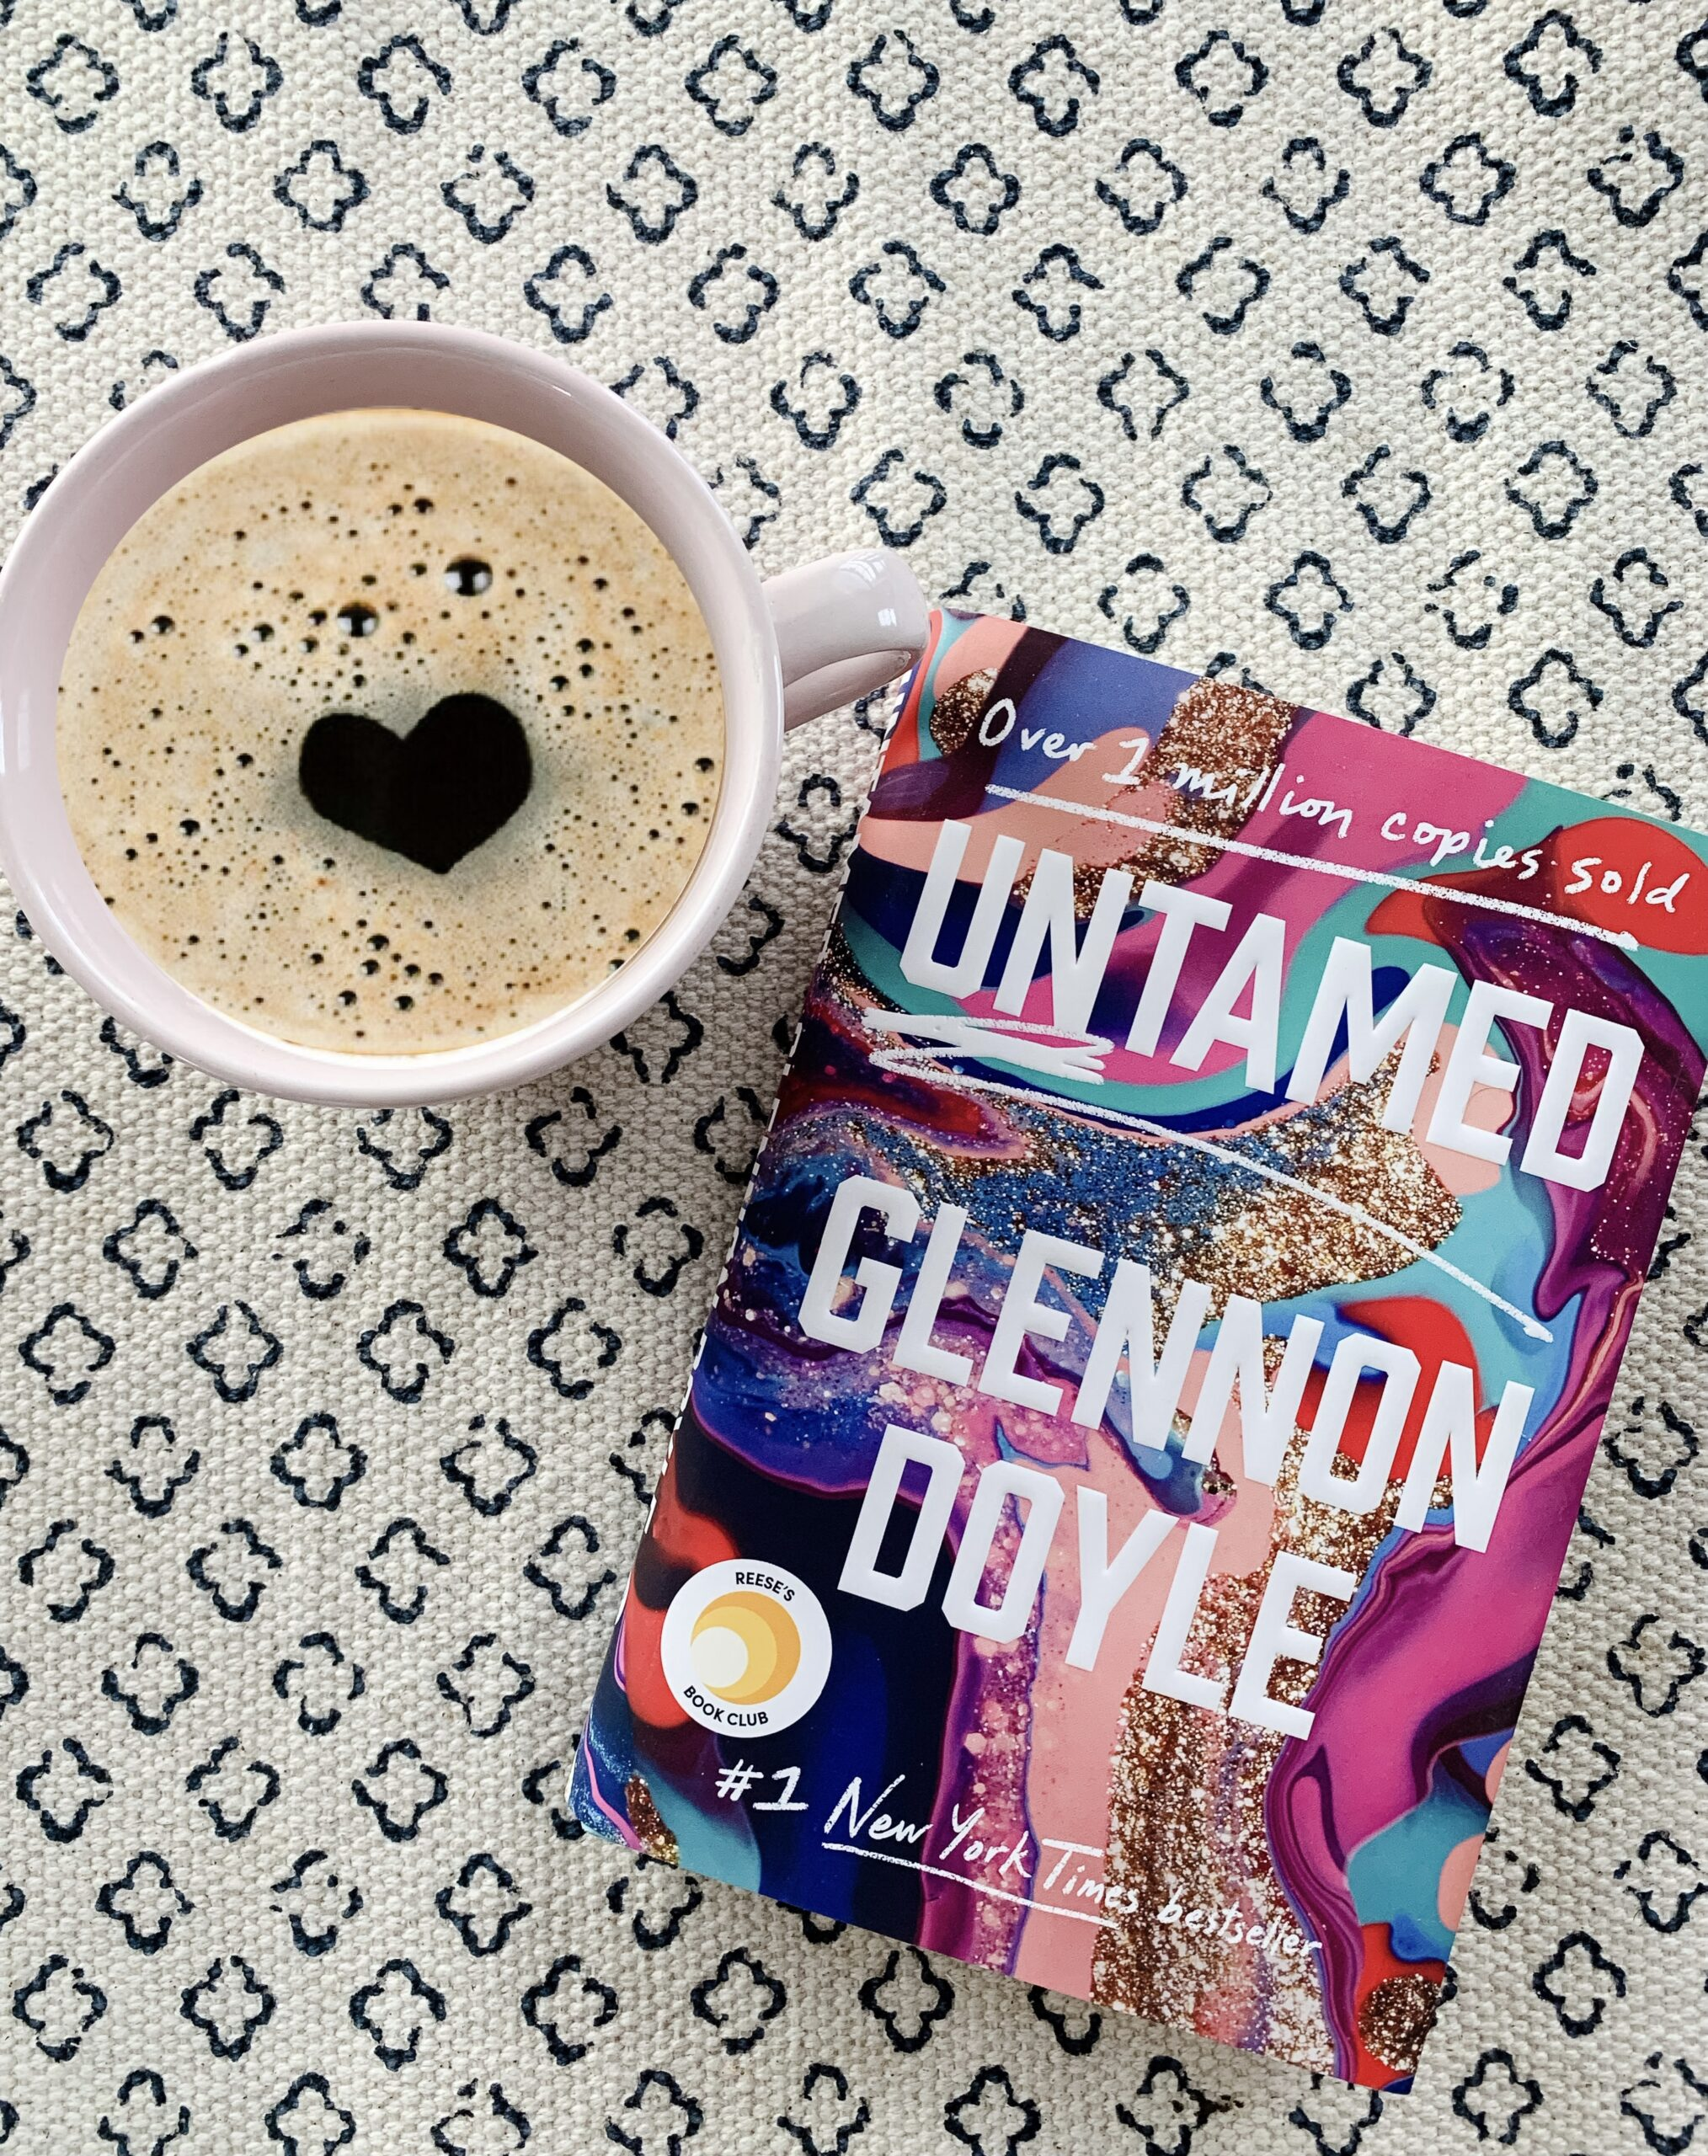 Untamed novel by Glennon Doyle with a cup of coffee, This is part of the Book-A-Month Reading Challenge